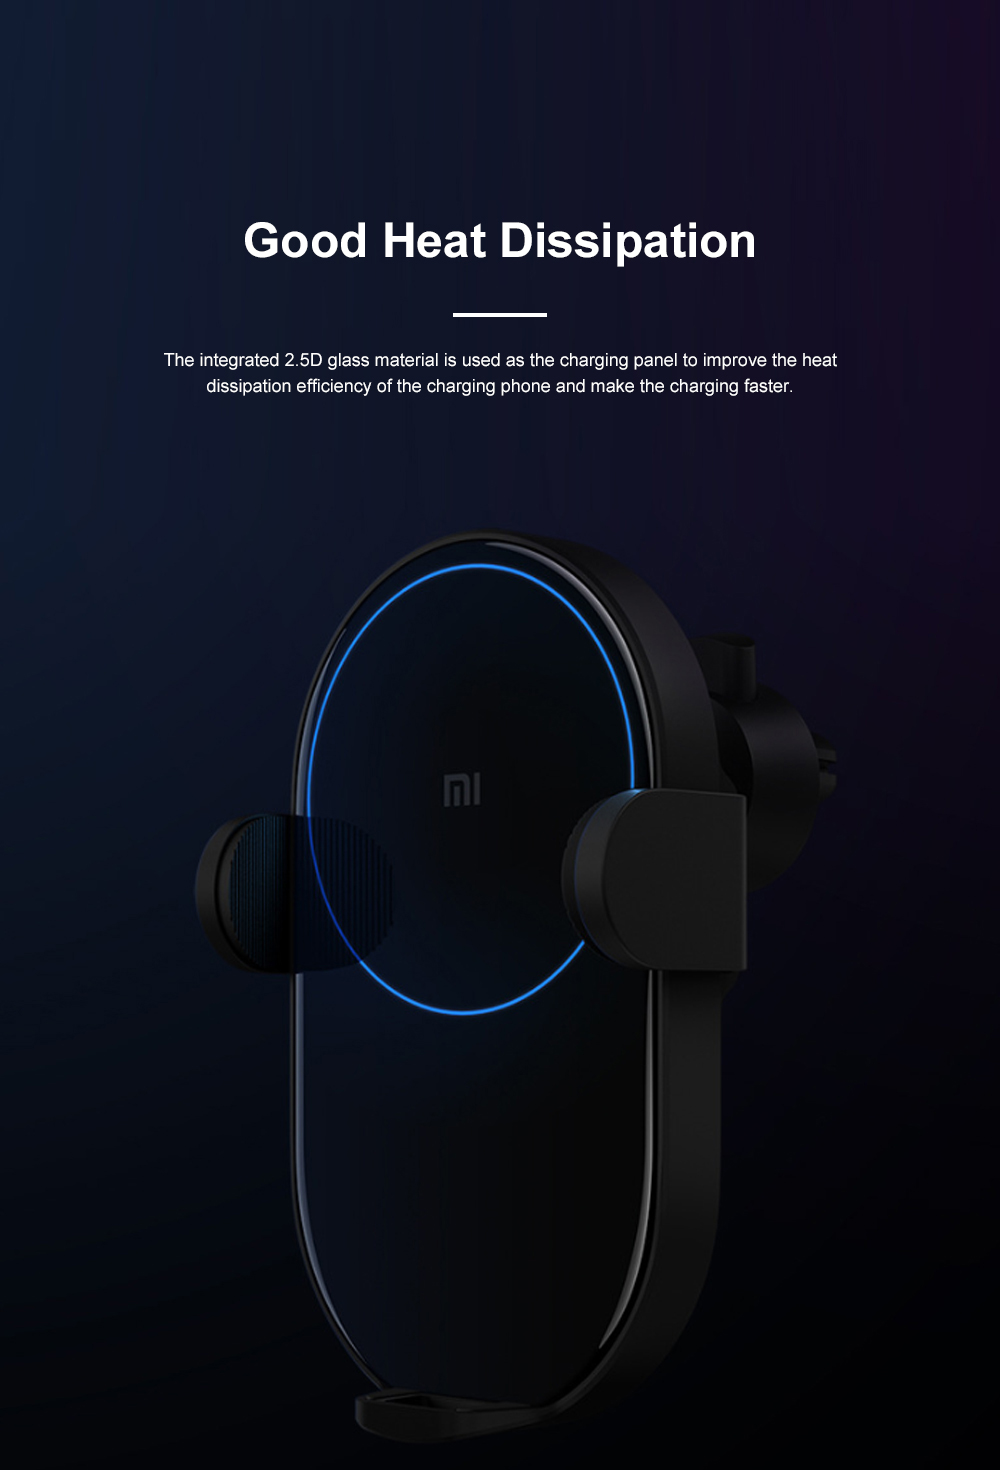 Xiaomi Car Wireless Charger Phone Holder 20W Wireless Air Vent Mount with Auto Clamping and Infrared Smart Sensor for MI 4